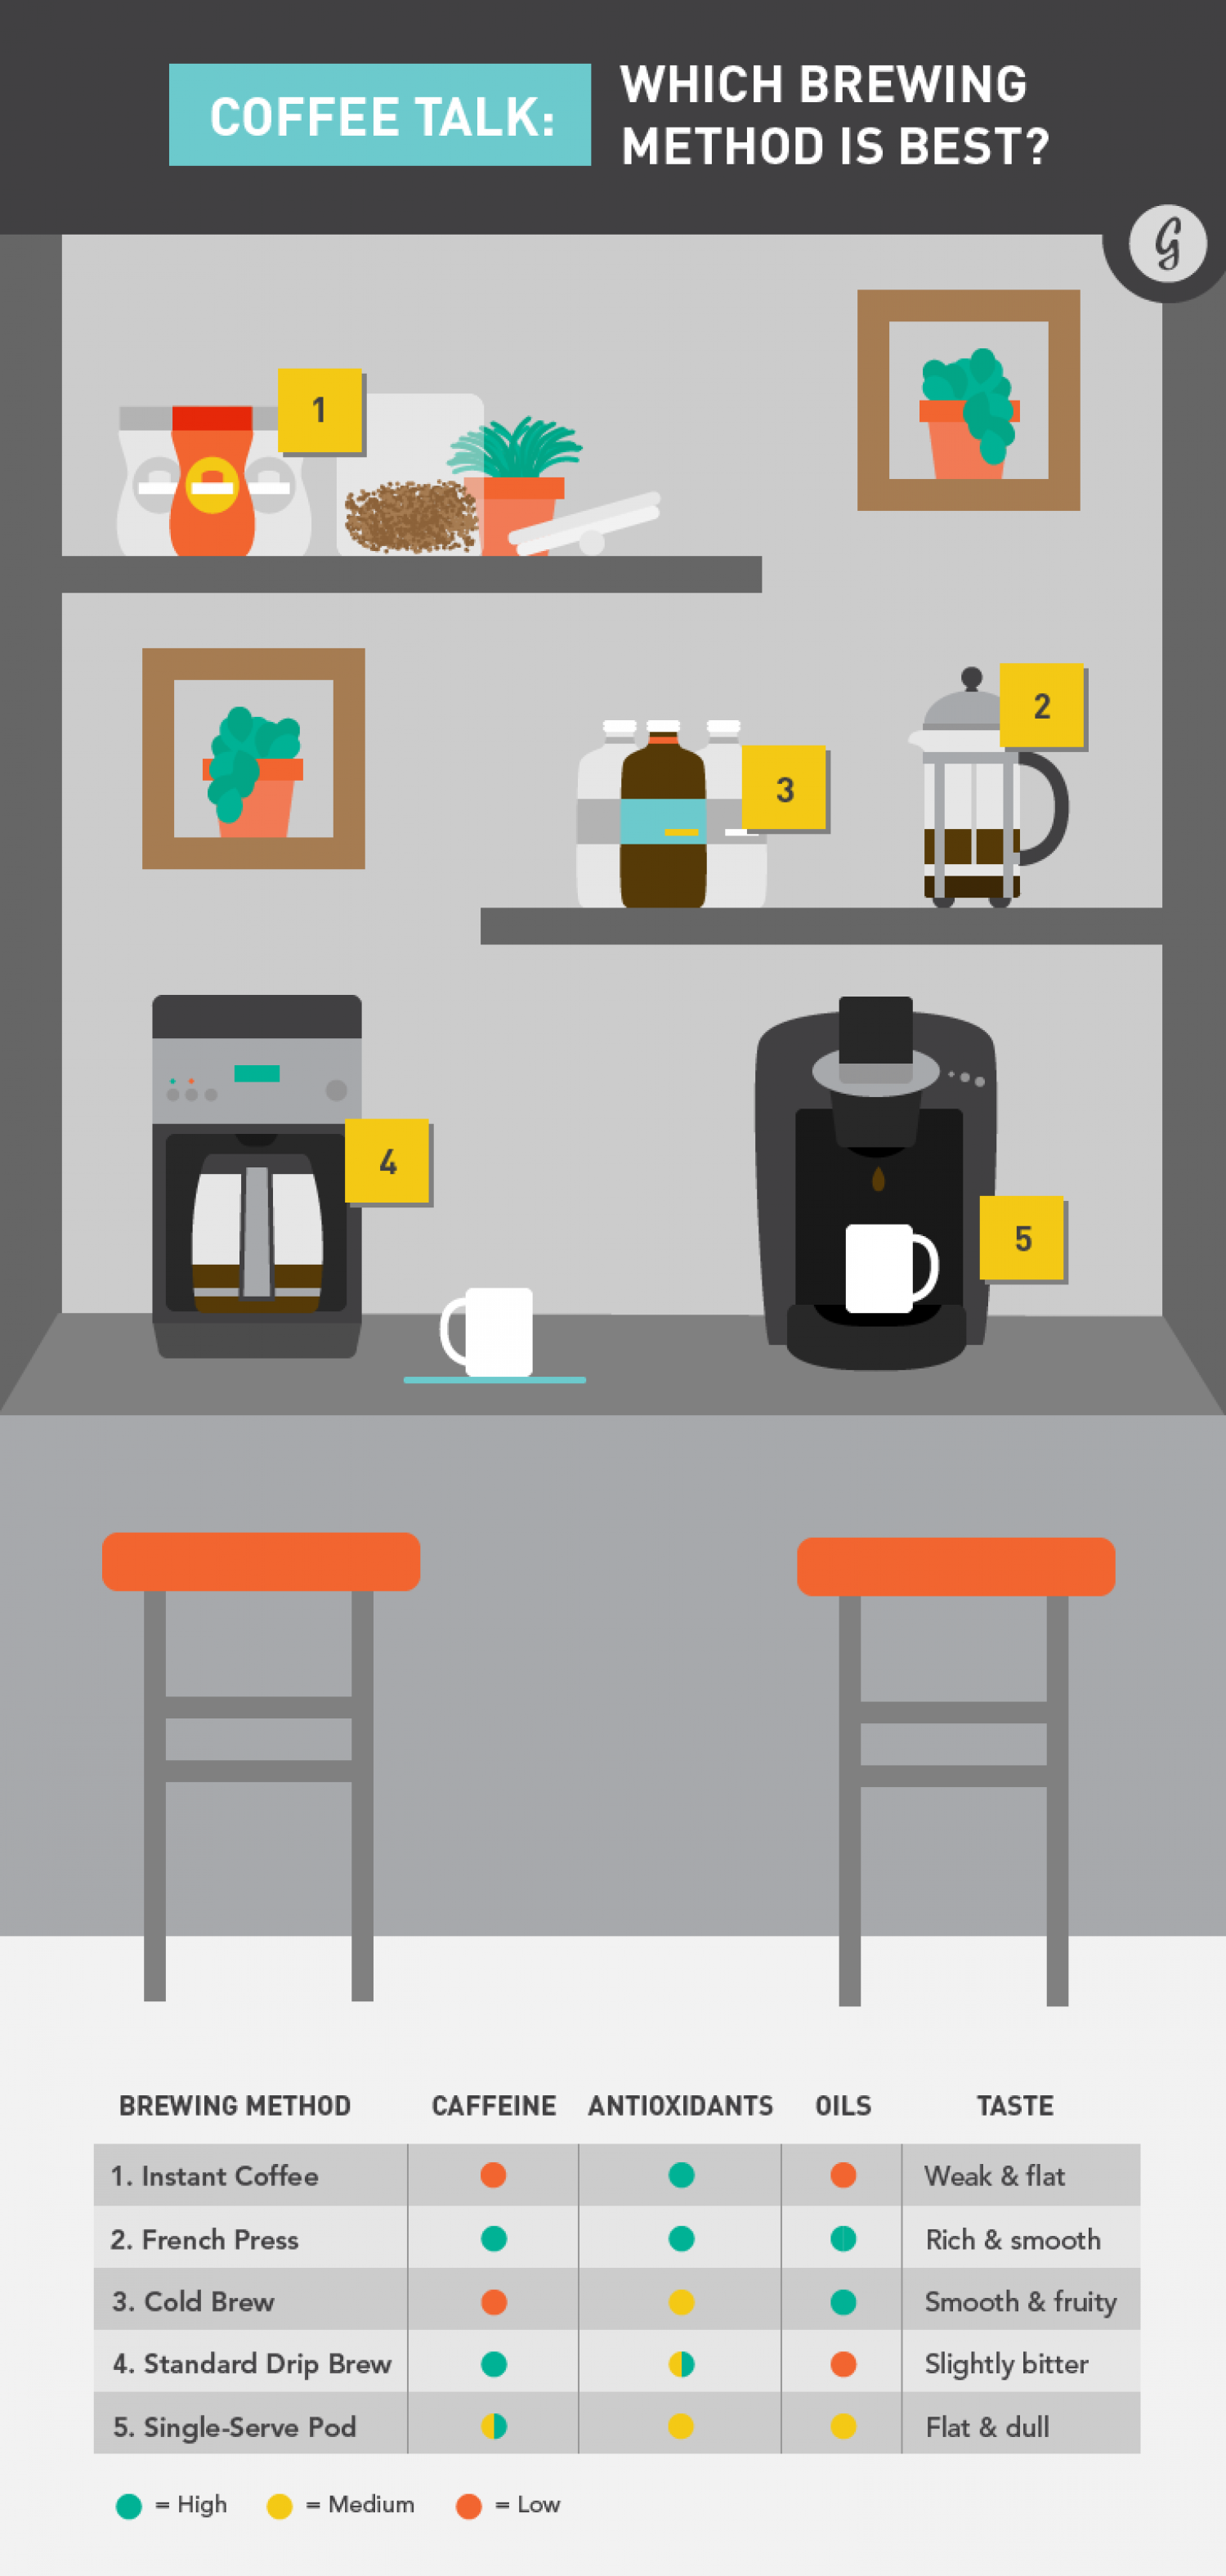 Coffee Talk: Which Brewing Method is Best? Infographic